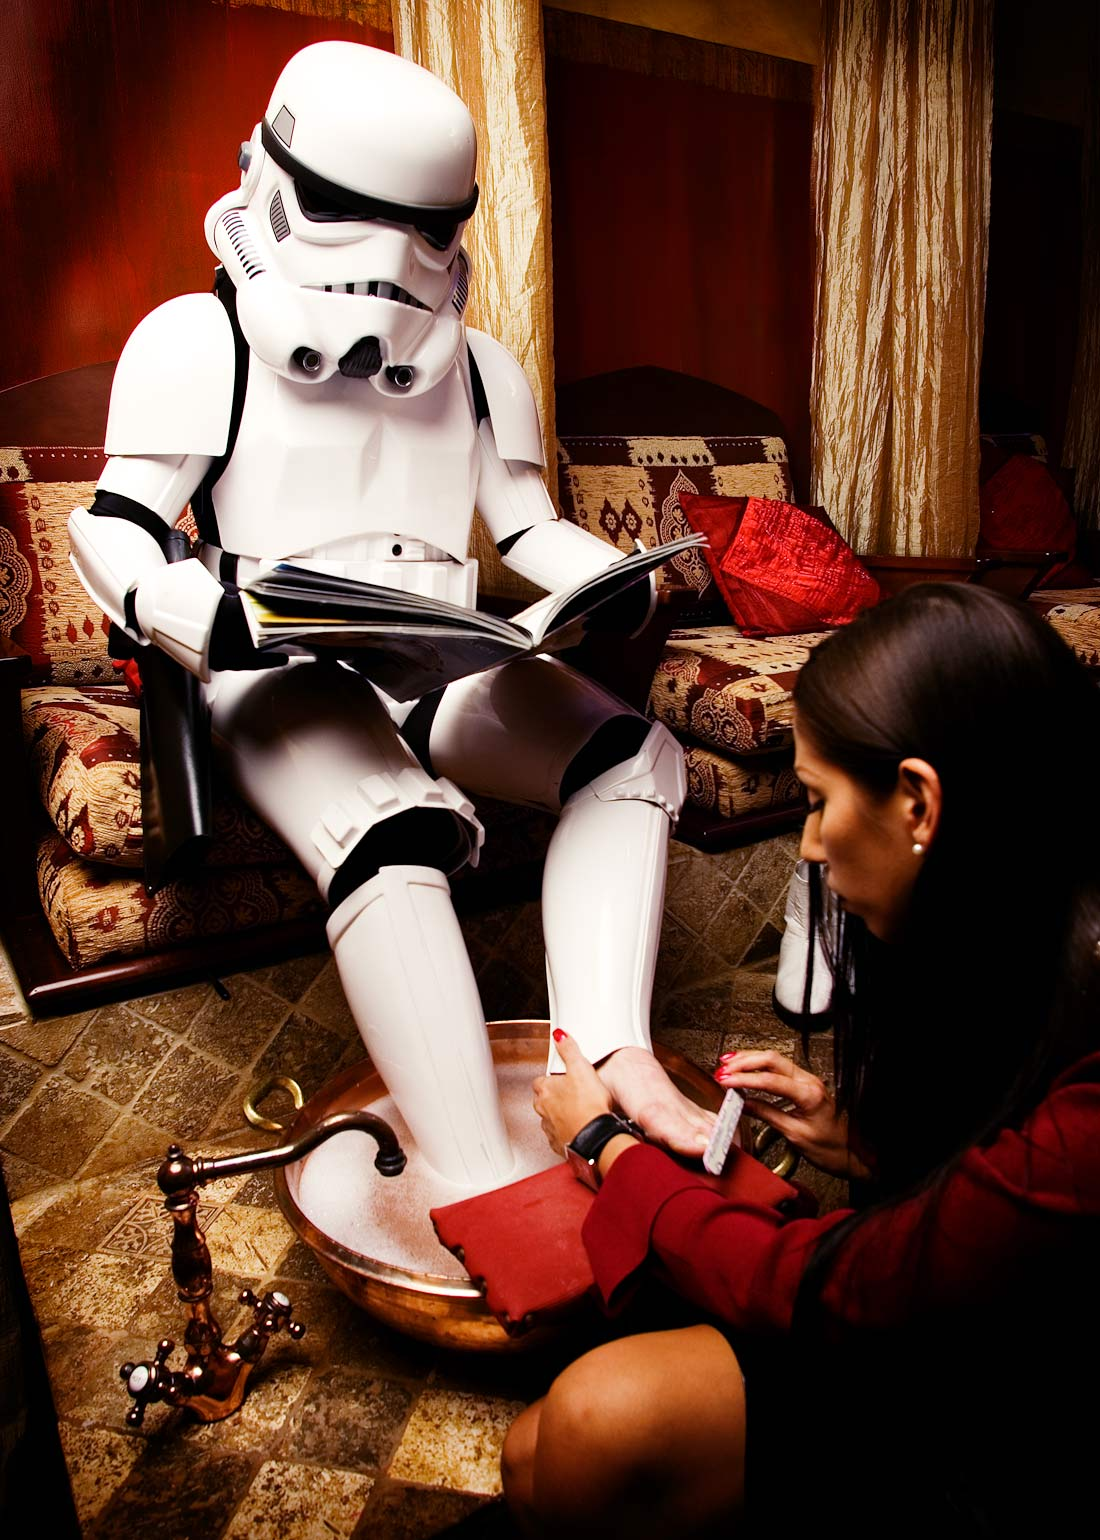 Commercial photographer Portland - Stormtrooper getting a pedicure by a woman in a salon by Michael Schmitt